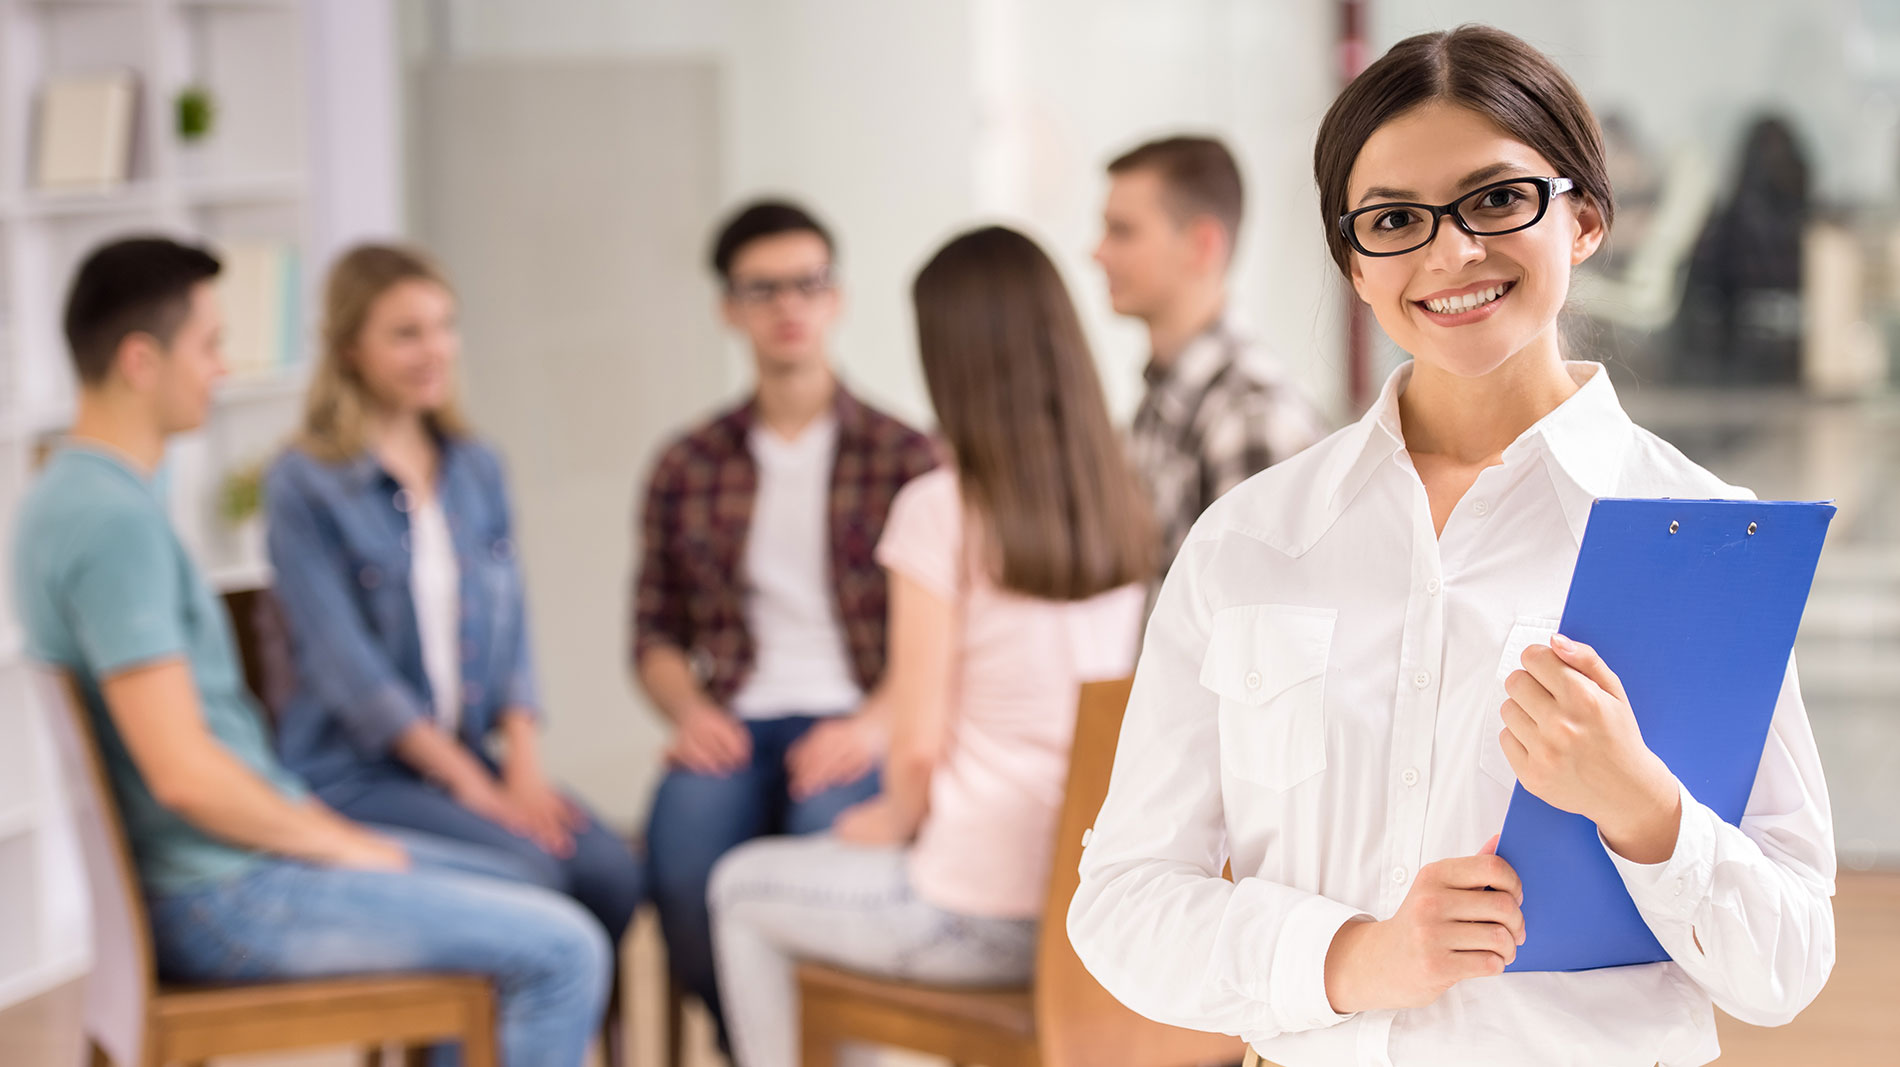 Effectively guide students on college admissions